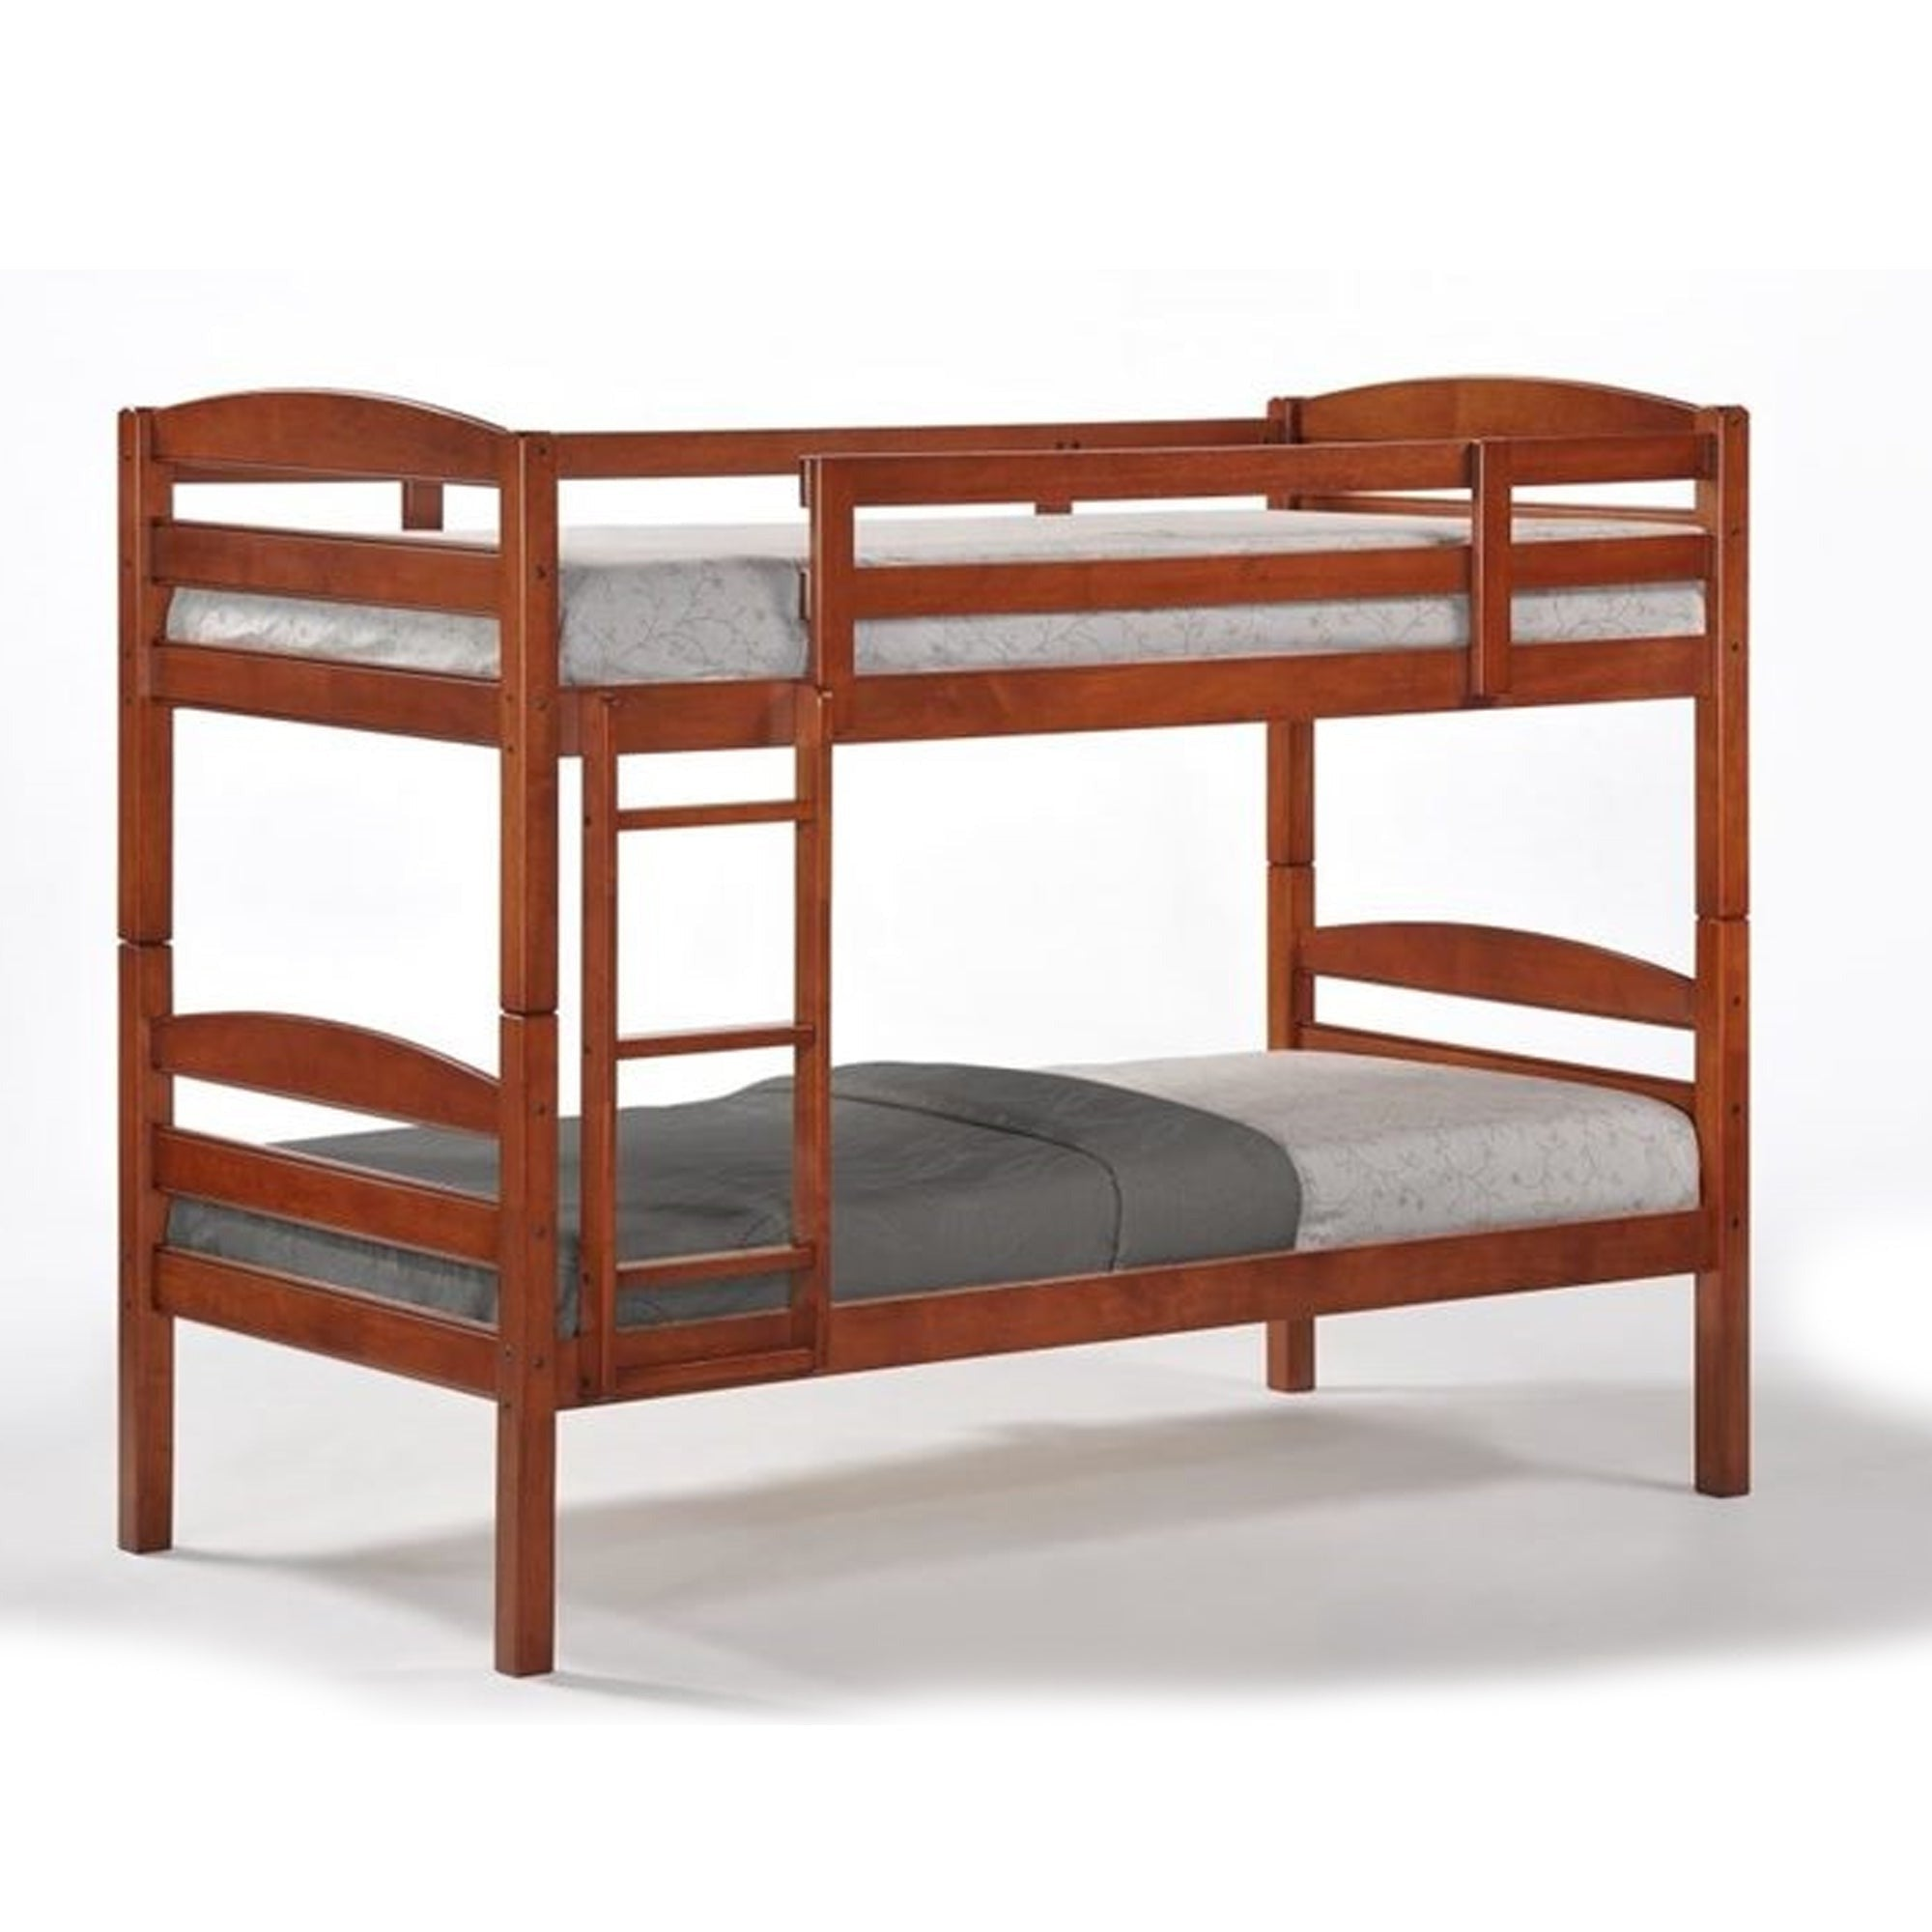 Wooden Bunk Beds The Bed Shop Auckland